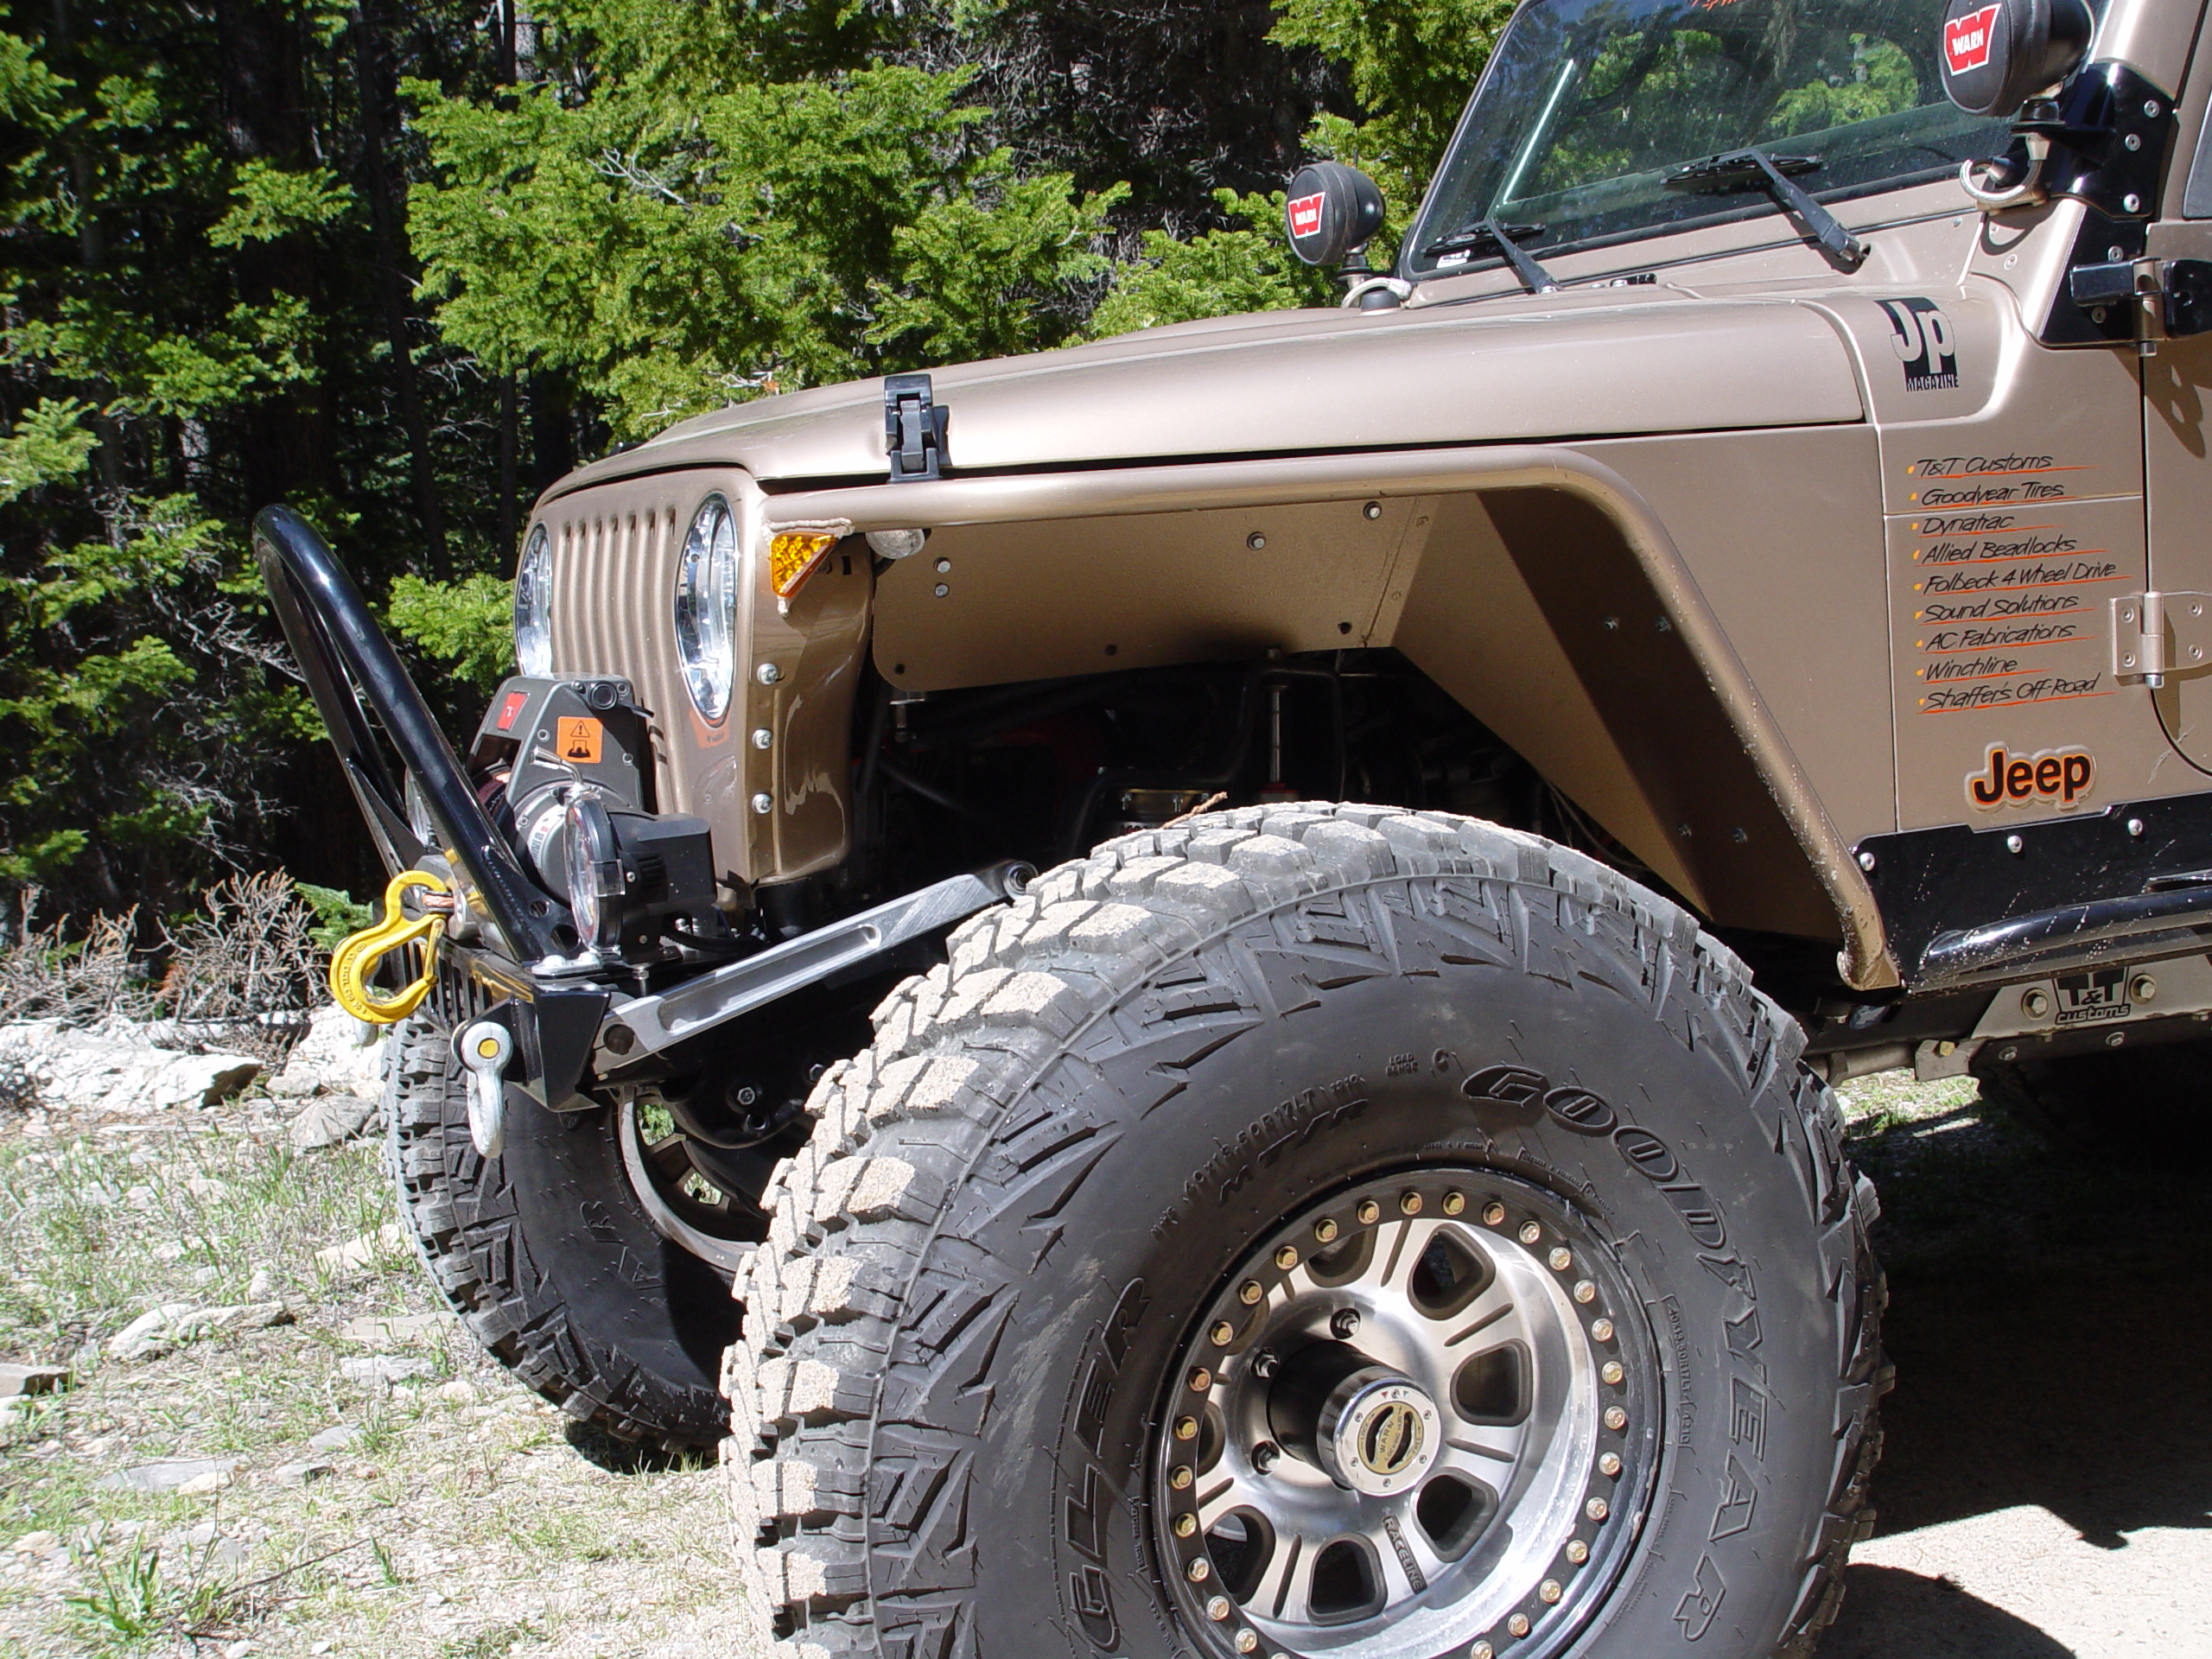 Jeep Wrangler Body Armor >> Jeep TJ Tube Fenders 3 Inch Flare High Clearance 97-06 ...